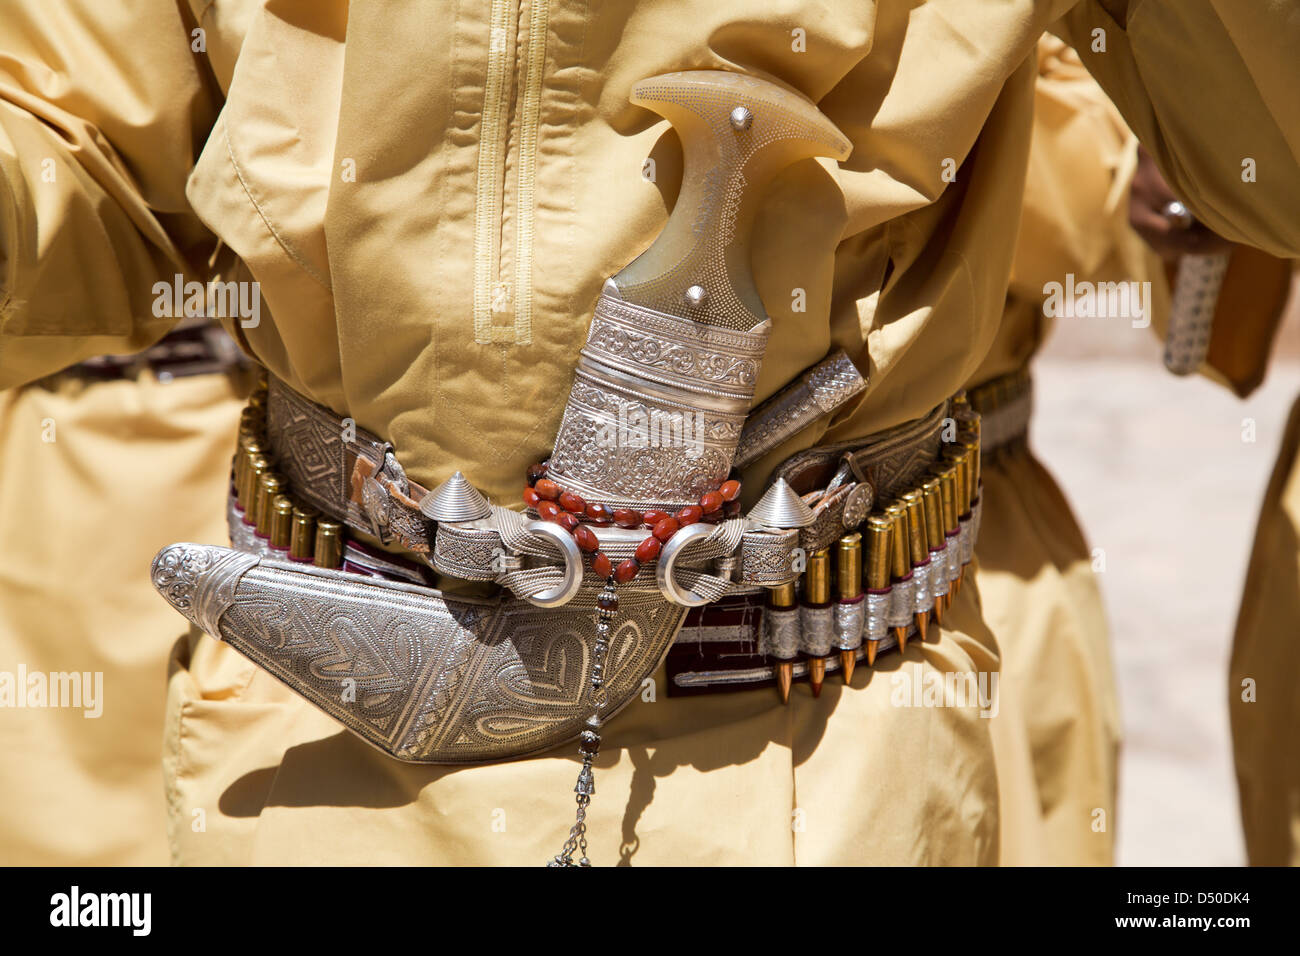 Traditional Omani Khanjar dagger worn in a sheath on a belt lined with bullets - Stock Image